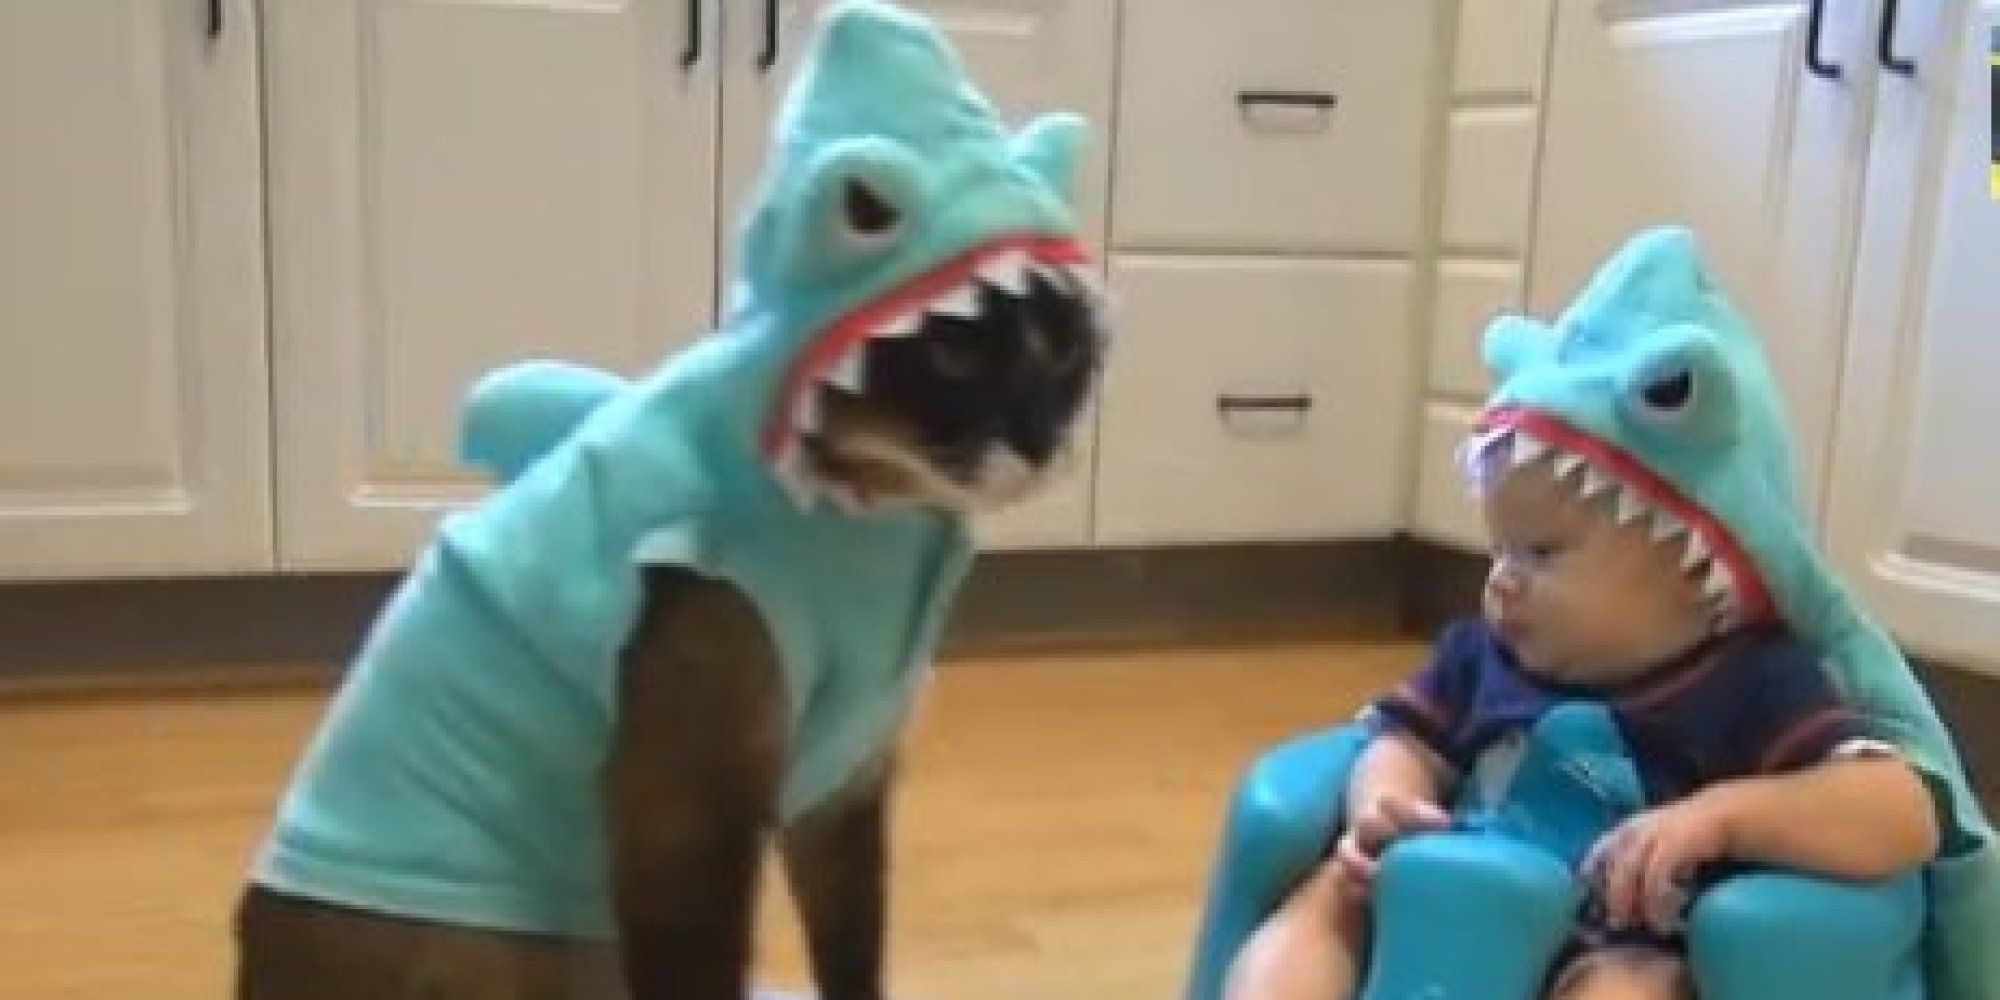 & Roomba-Riding Shark Cat Faces Off With Baby In Shark Costume | HuffPost